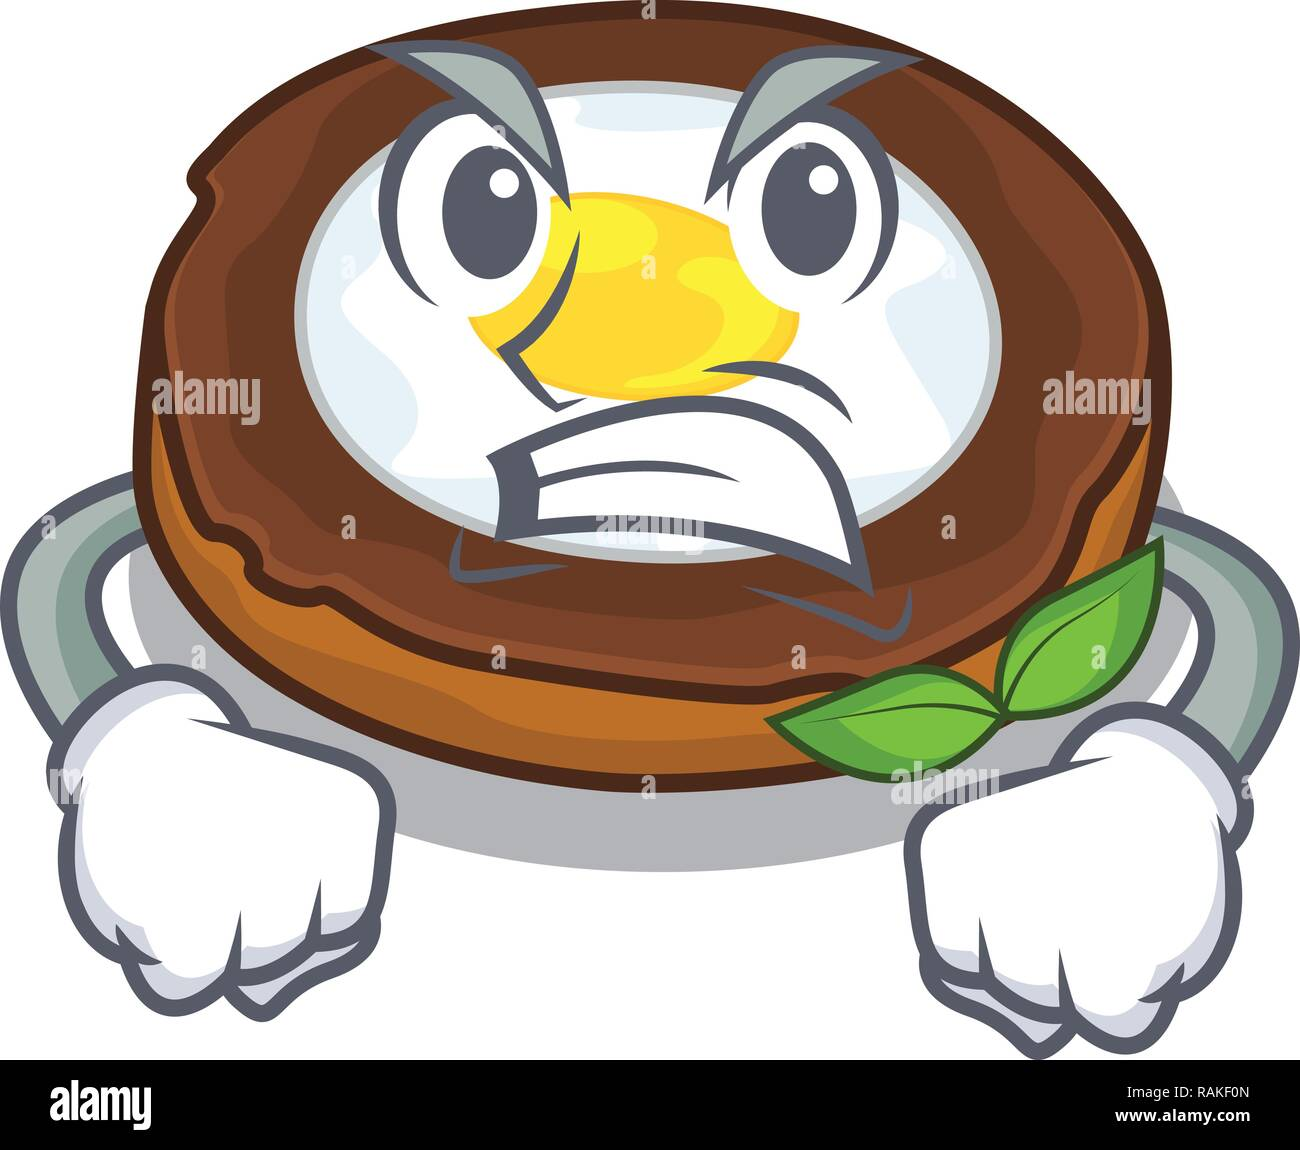 Angry egg scotch on character wood boards - Stock Vector